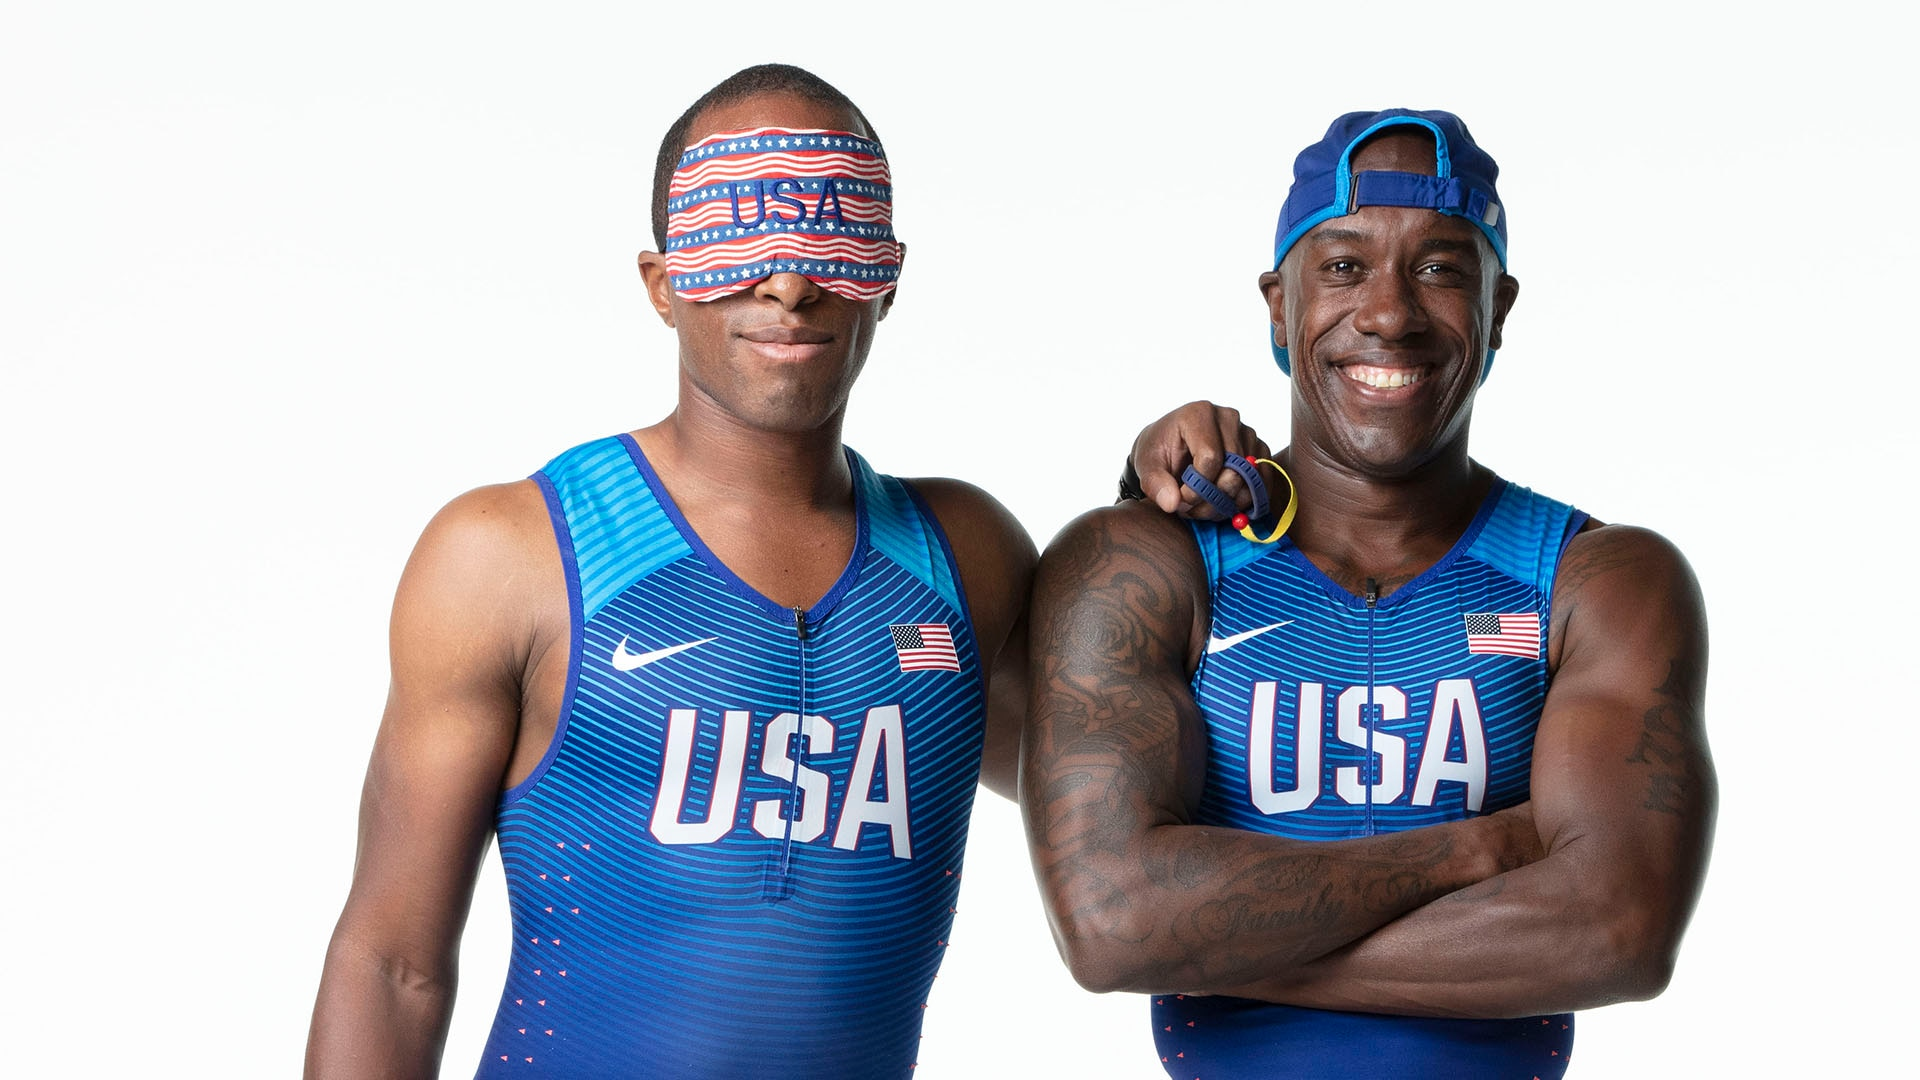 Paralympic track and field athlete David Brown (L) poses outside on a track with guide Jerome Avery (R) during a 2019 photoshoot in Southern California